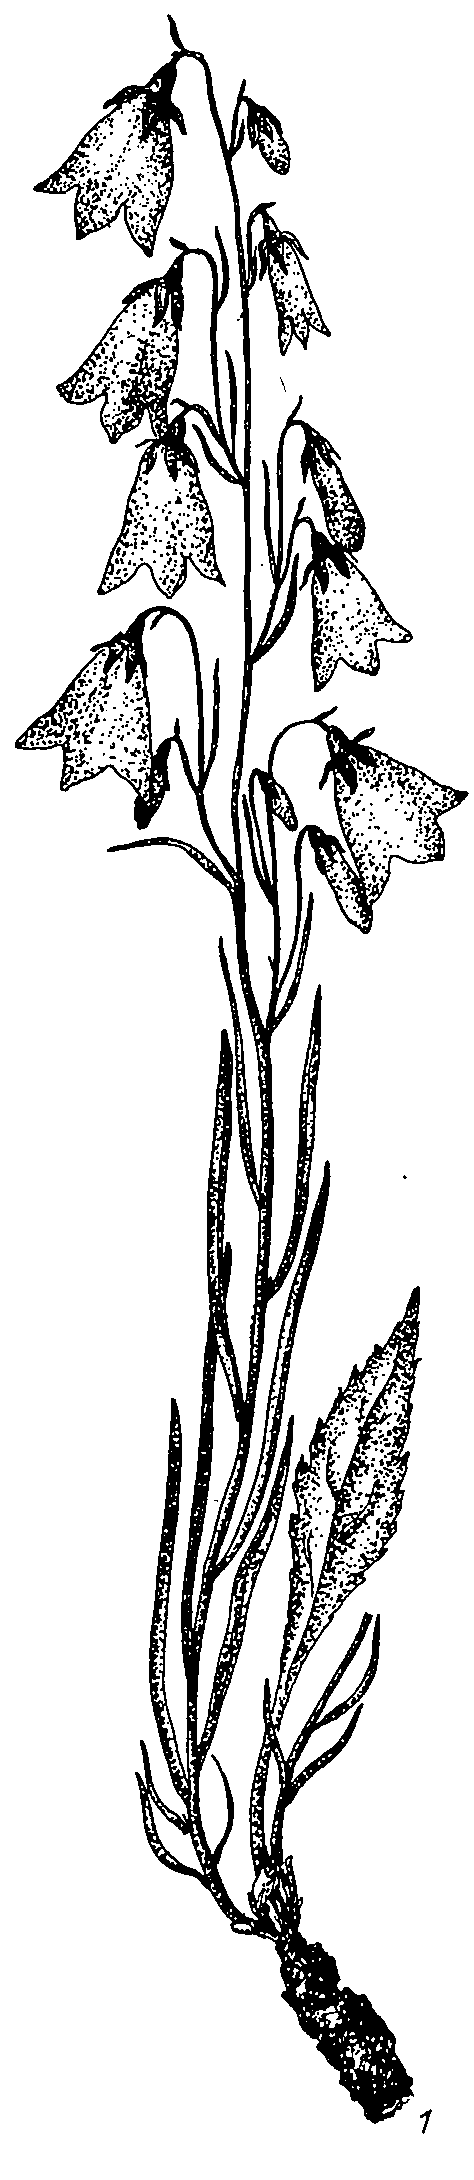 Adenophora_gmelinii_1a.png